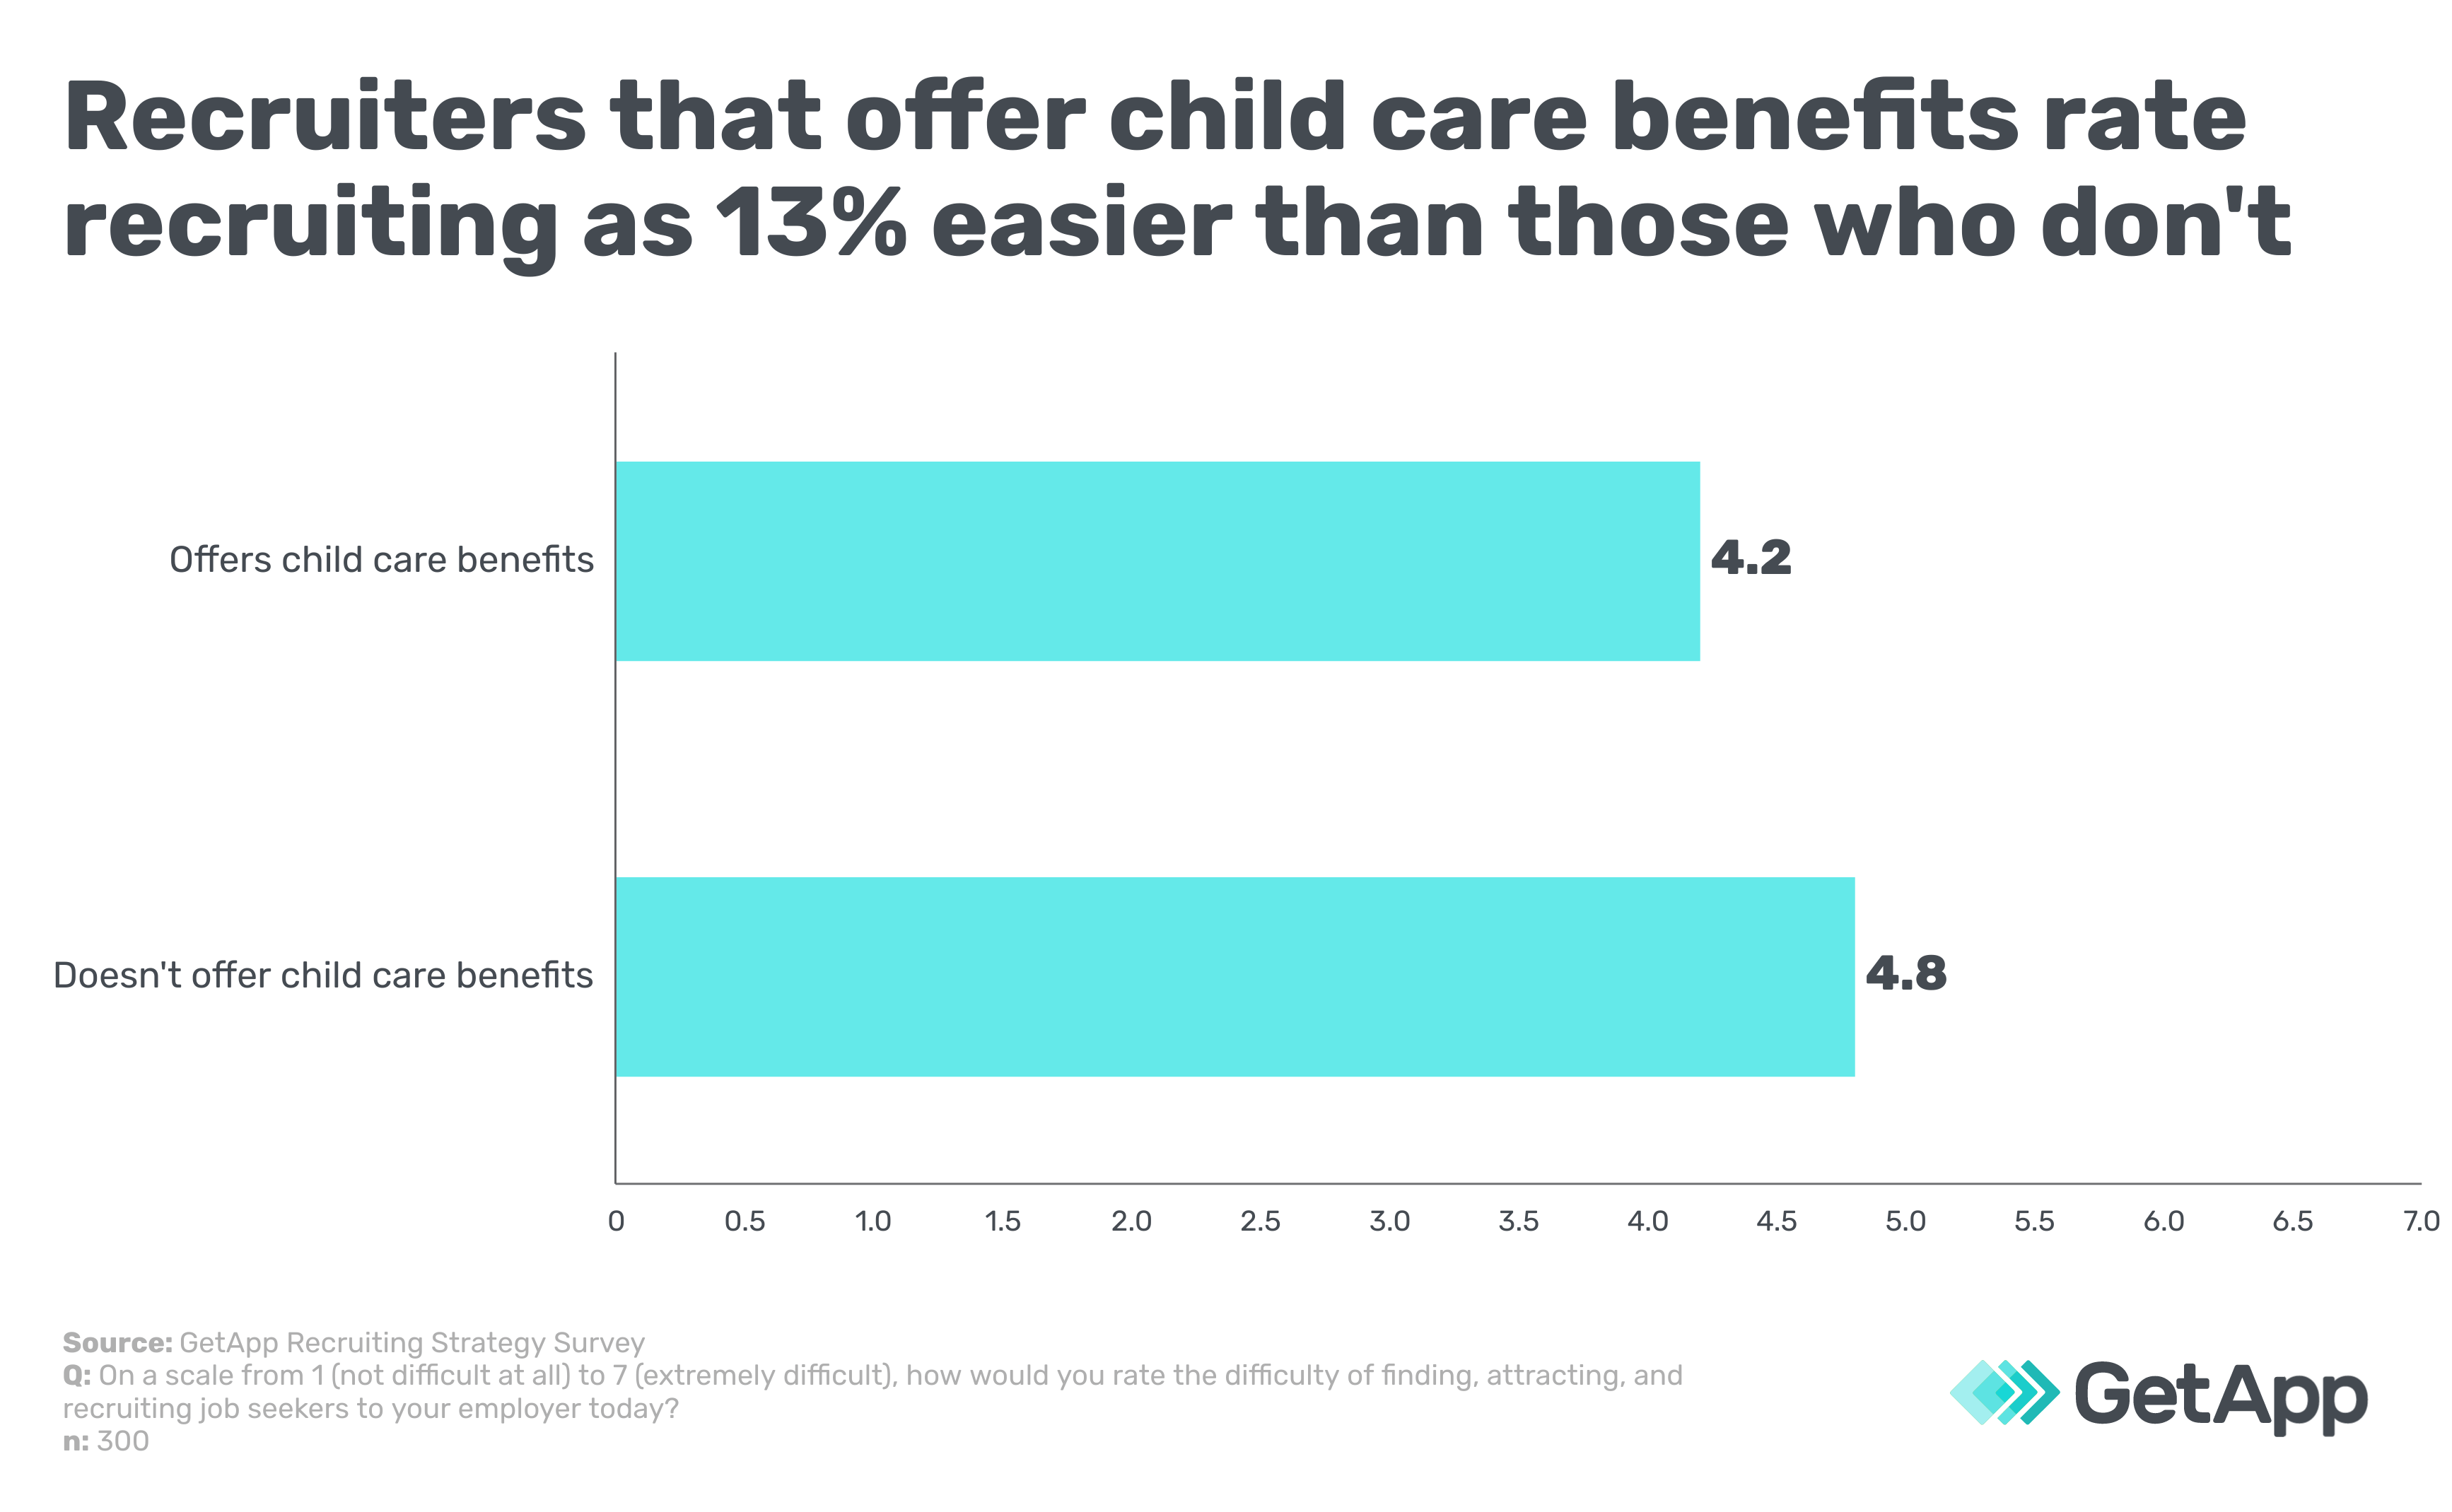 Recruiters that offer child care benefits rate recruiting as 13% easier than those who don't